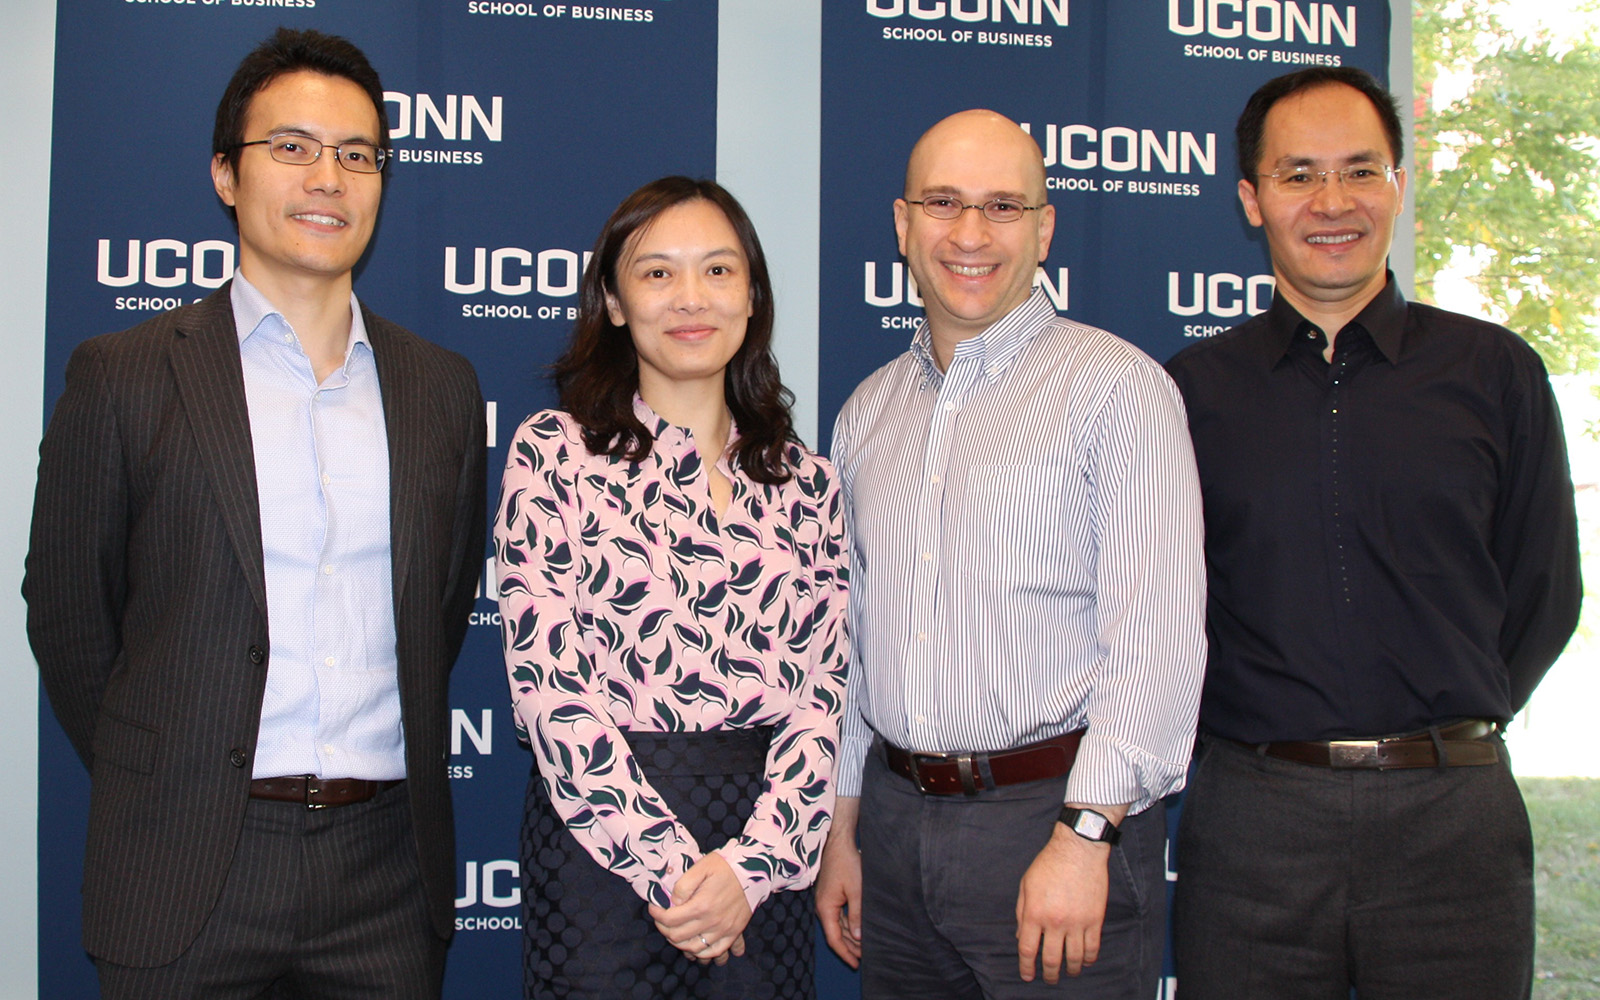 From left: Shijie Lu, Ying Xie, Yakov Bart, and Xueming Luo. (Nancy White/UConn School of Business)